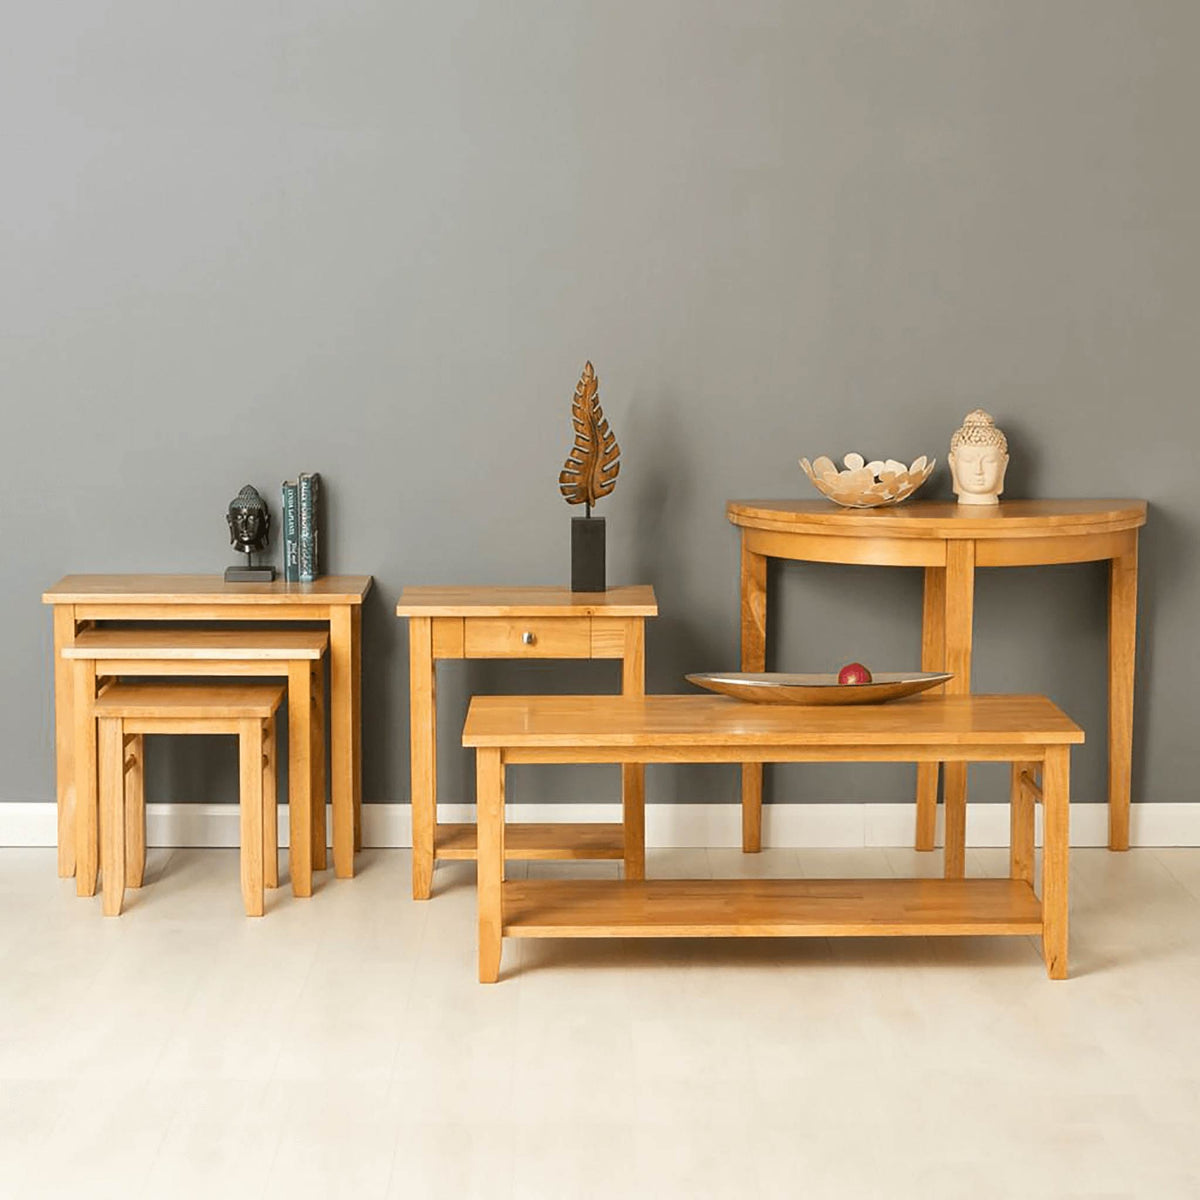 Oxford Light Oak Console Table - range view